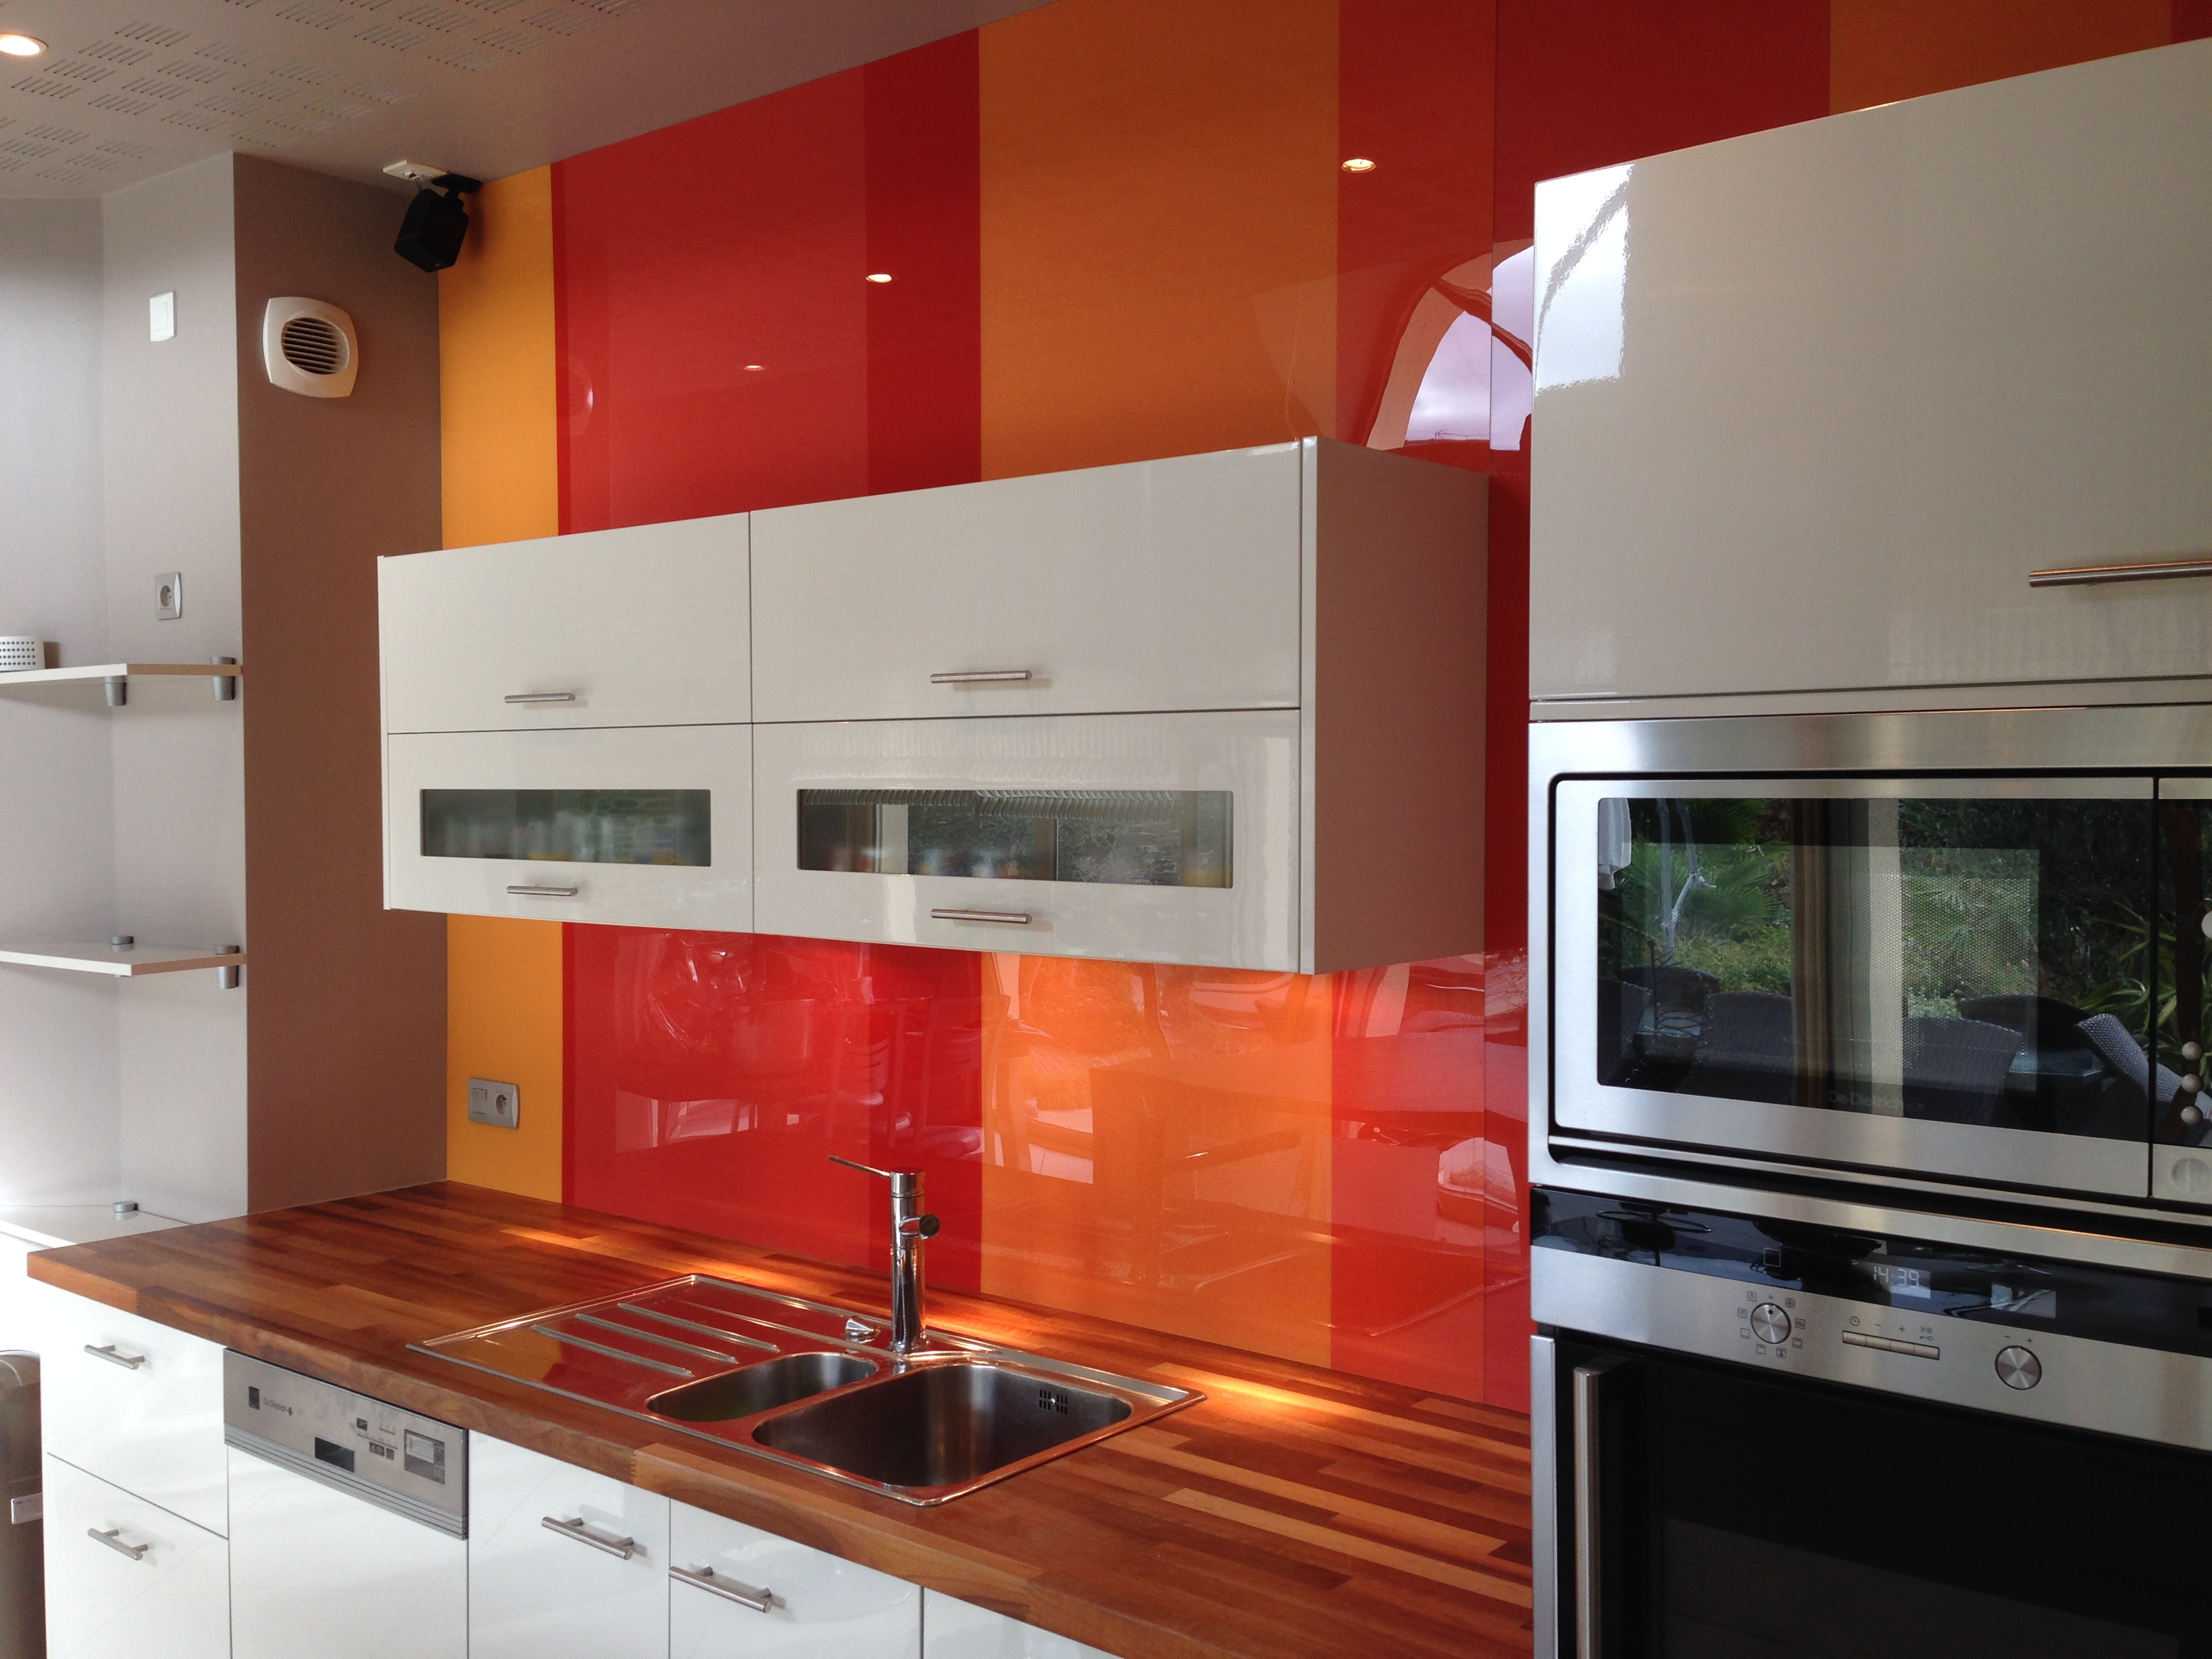 La cuisine s habille de rouge le blog d 39 arthur bonnet for Deco cuisine orange blanc